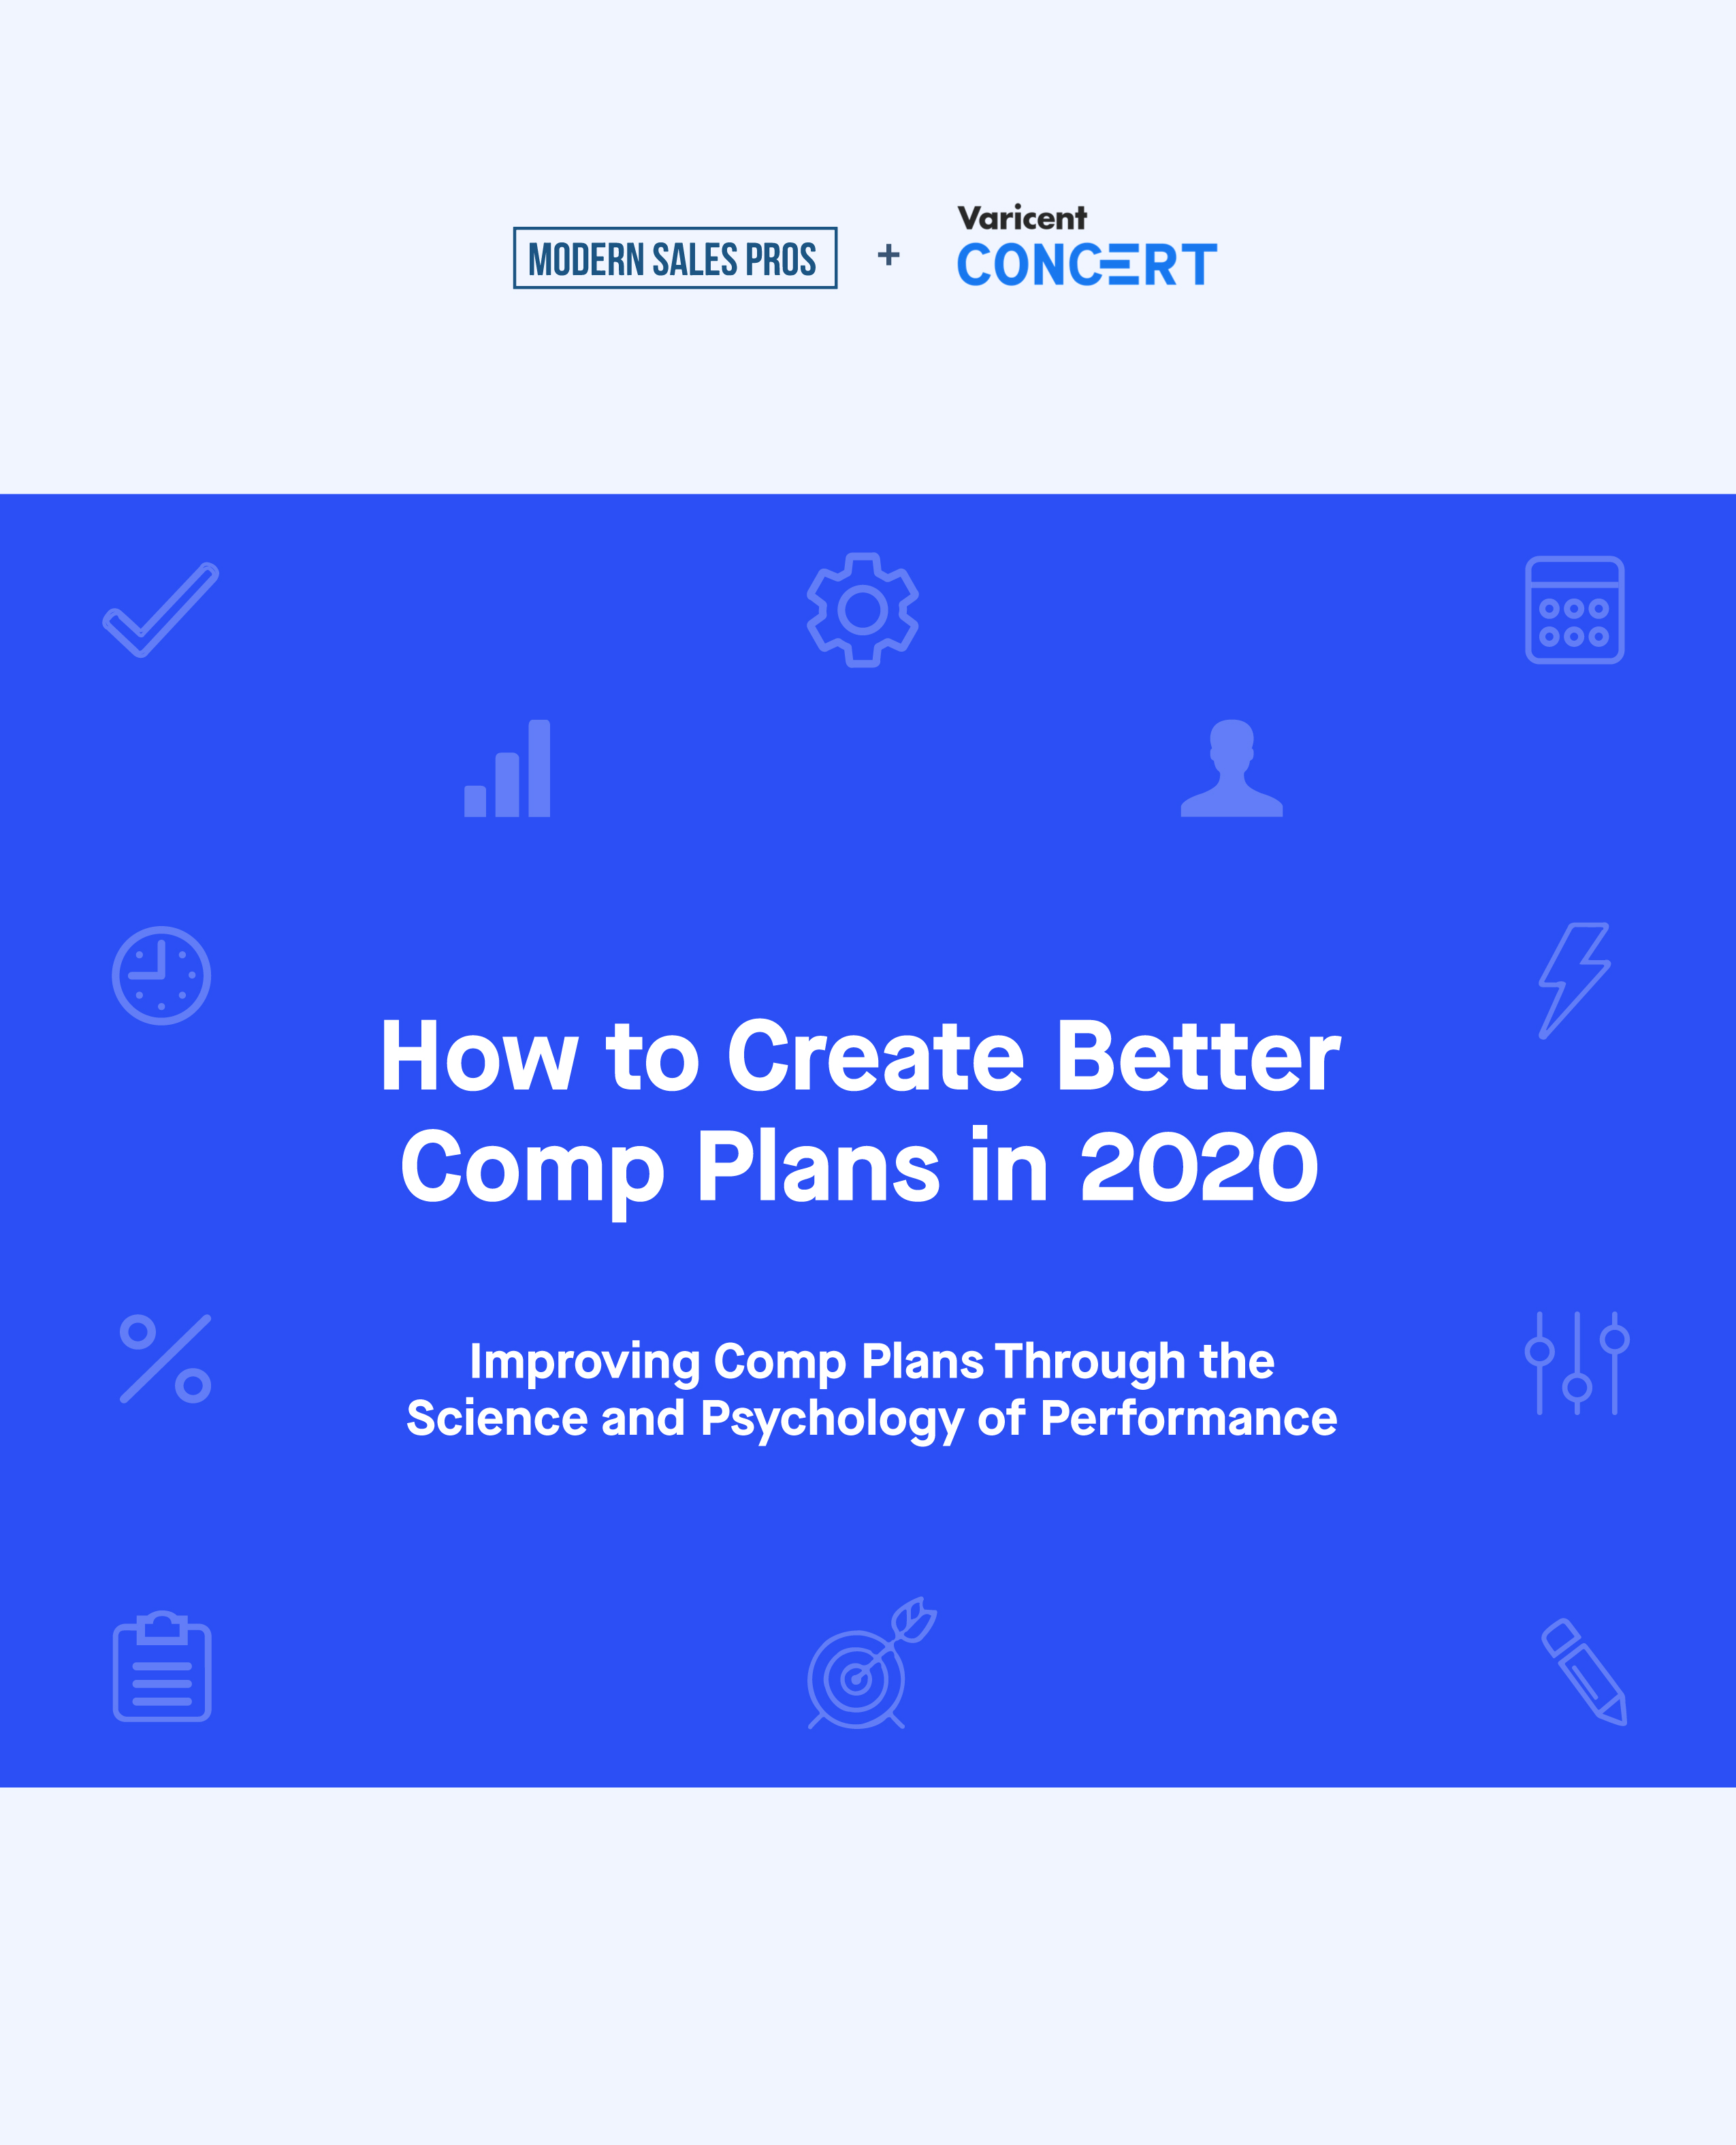 How to Create Better Comp Plans in 2020